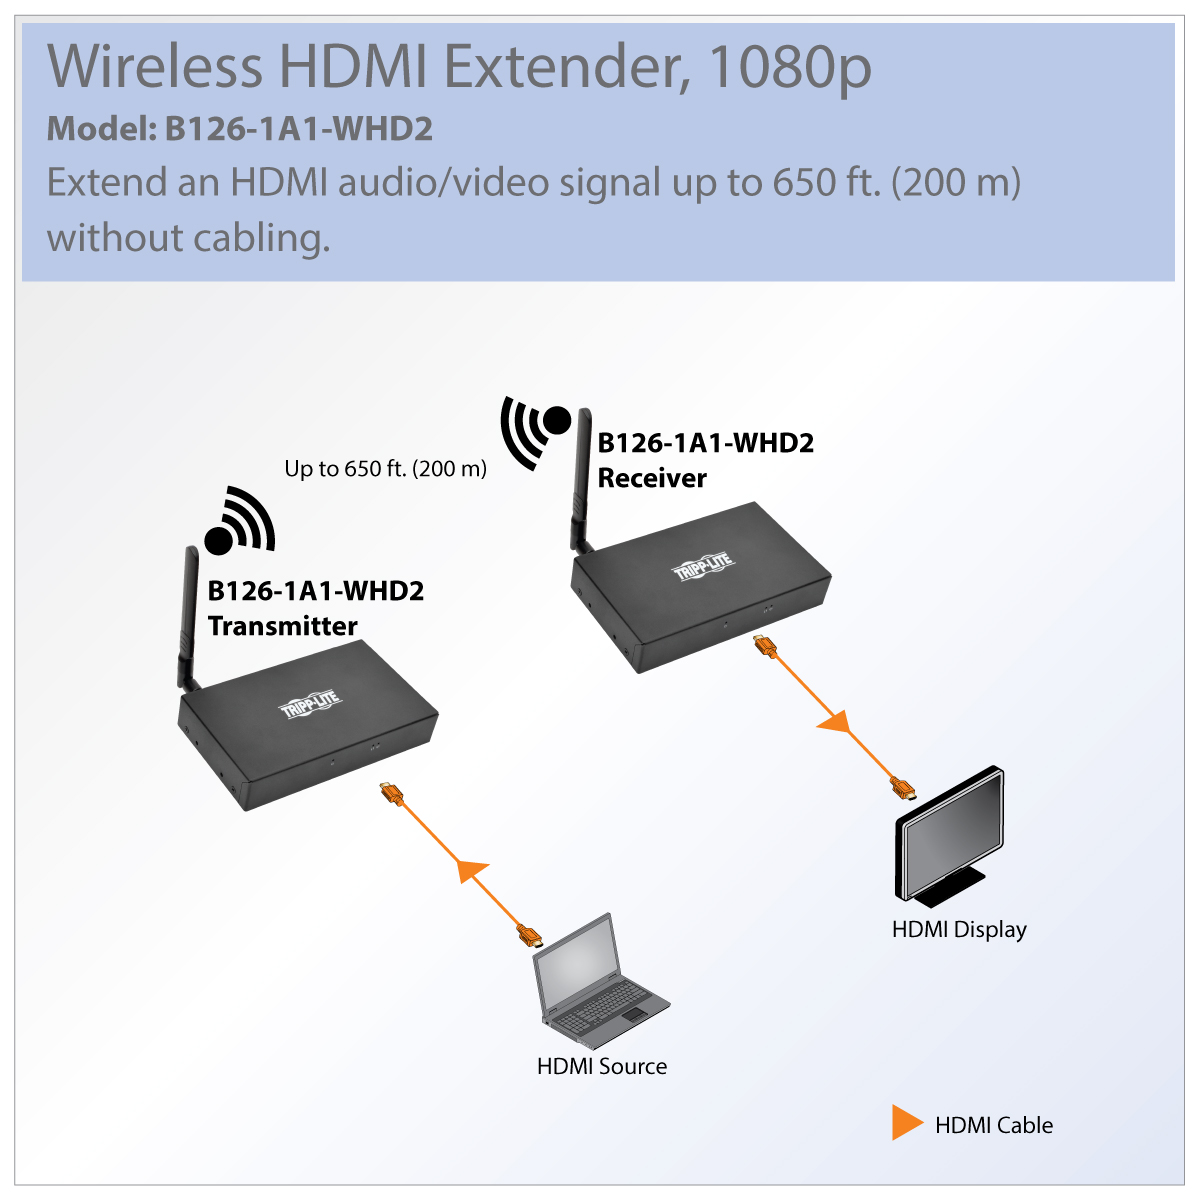 Tripp Lite Wireless Hdmi Extender 1080p With Ir Control 200 M B126 Wiring Diagram Save On Cable And Installation Costs